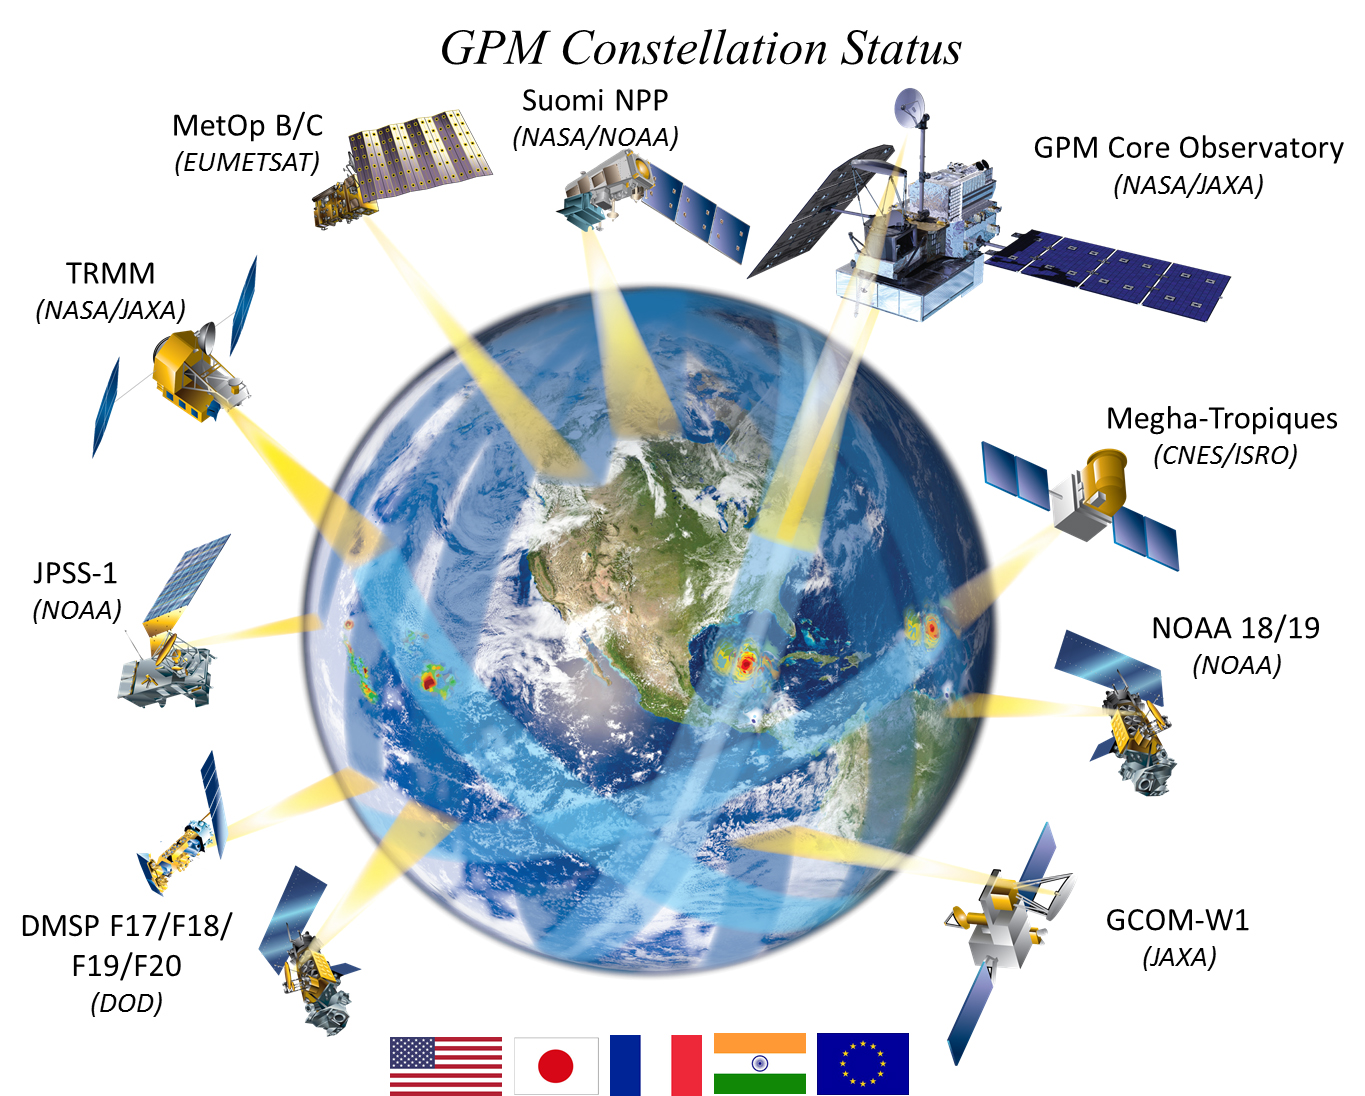 gpm_constellation_01_13_14